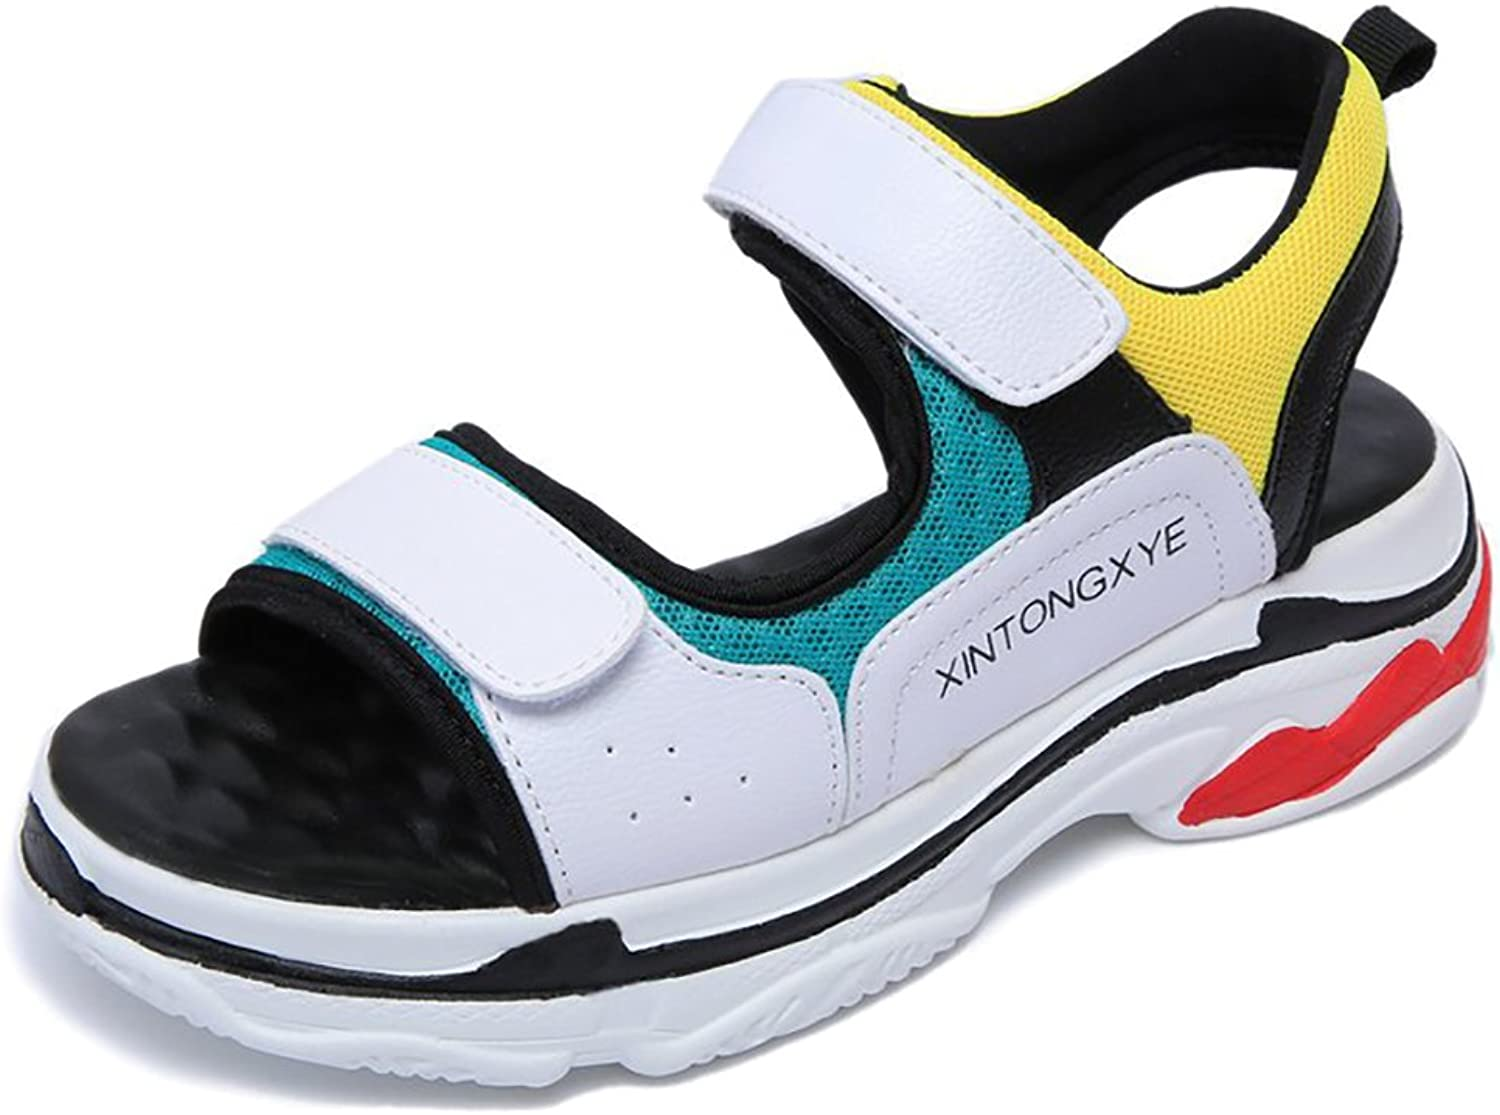 YVWTUC Female Sporting shoes Students Athletic Running Sandals